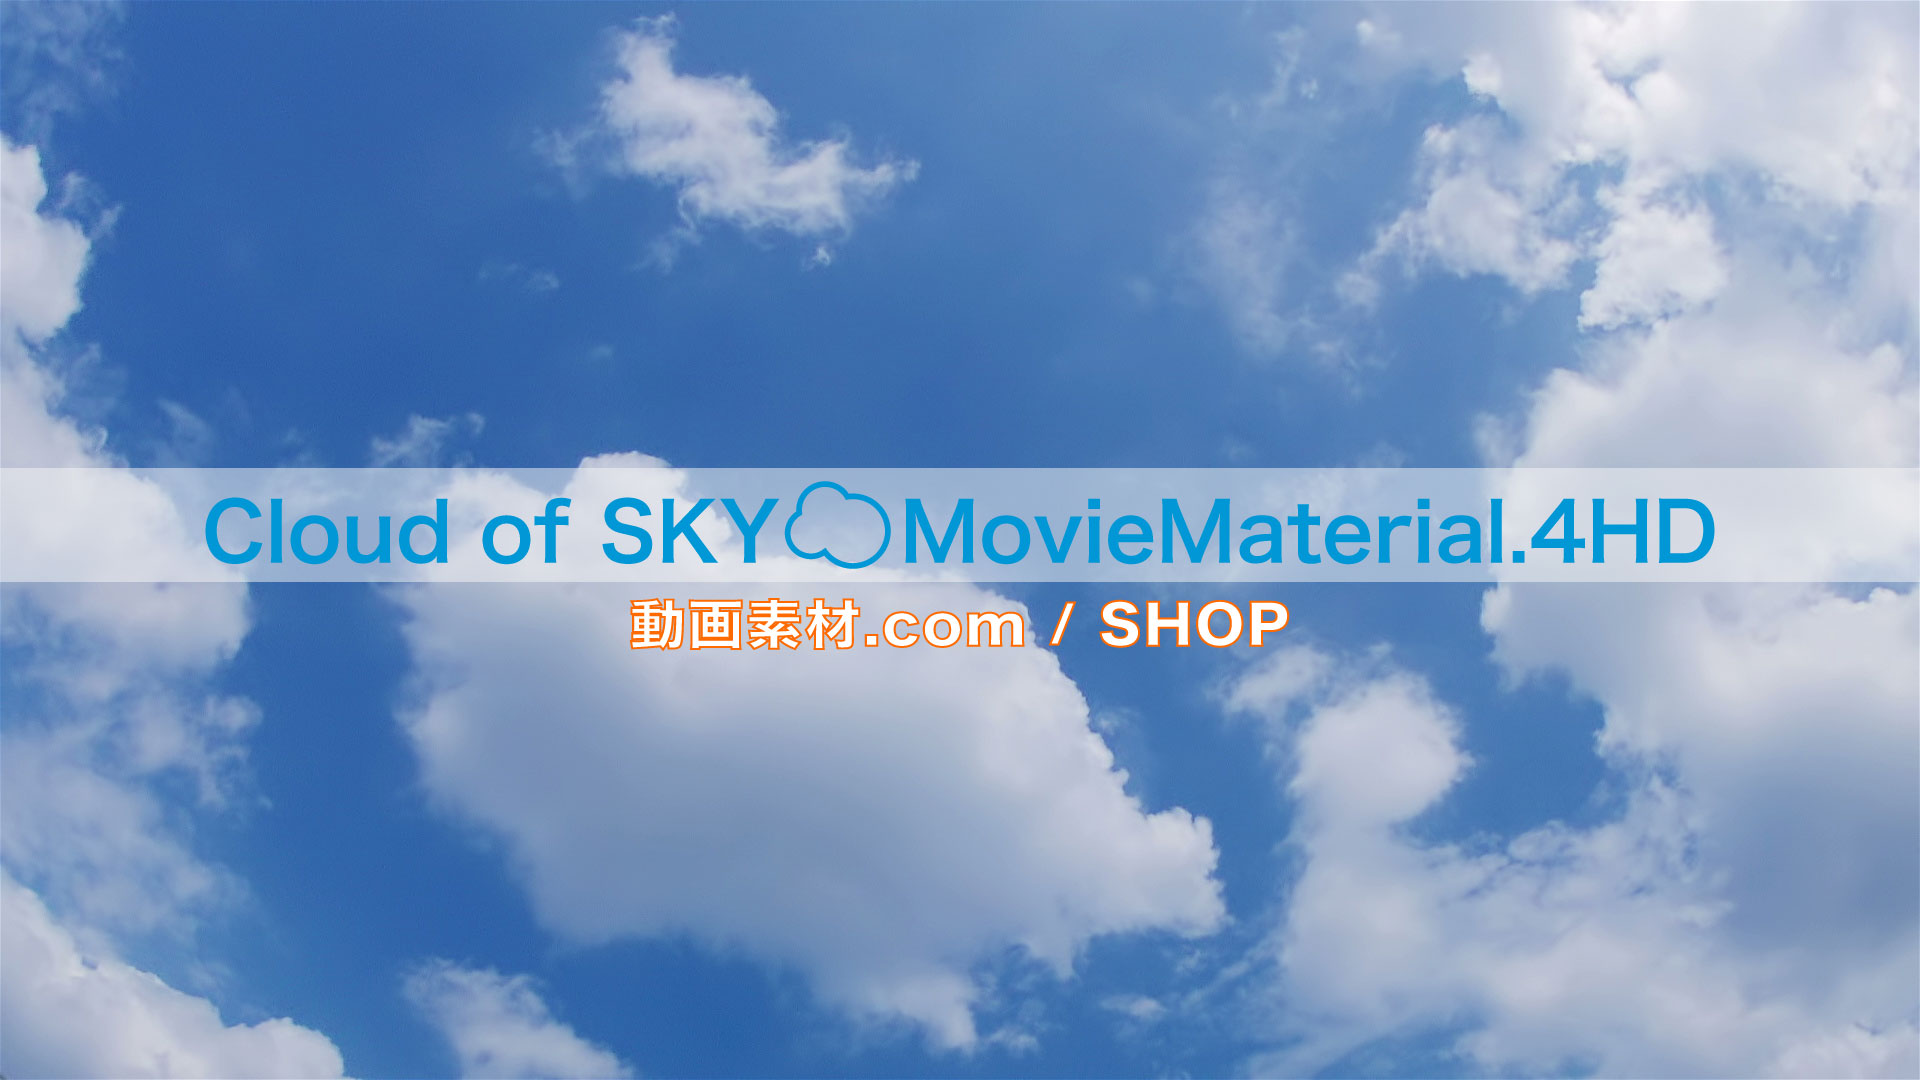 【Cloud of SKY MovieMaterial.4HD】ロイヤリティフリー フルハイビジョン空と雲の動画素材集 Image.9